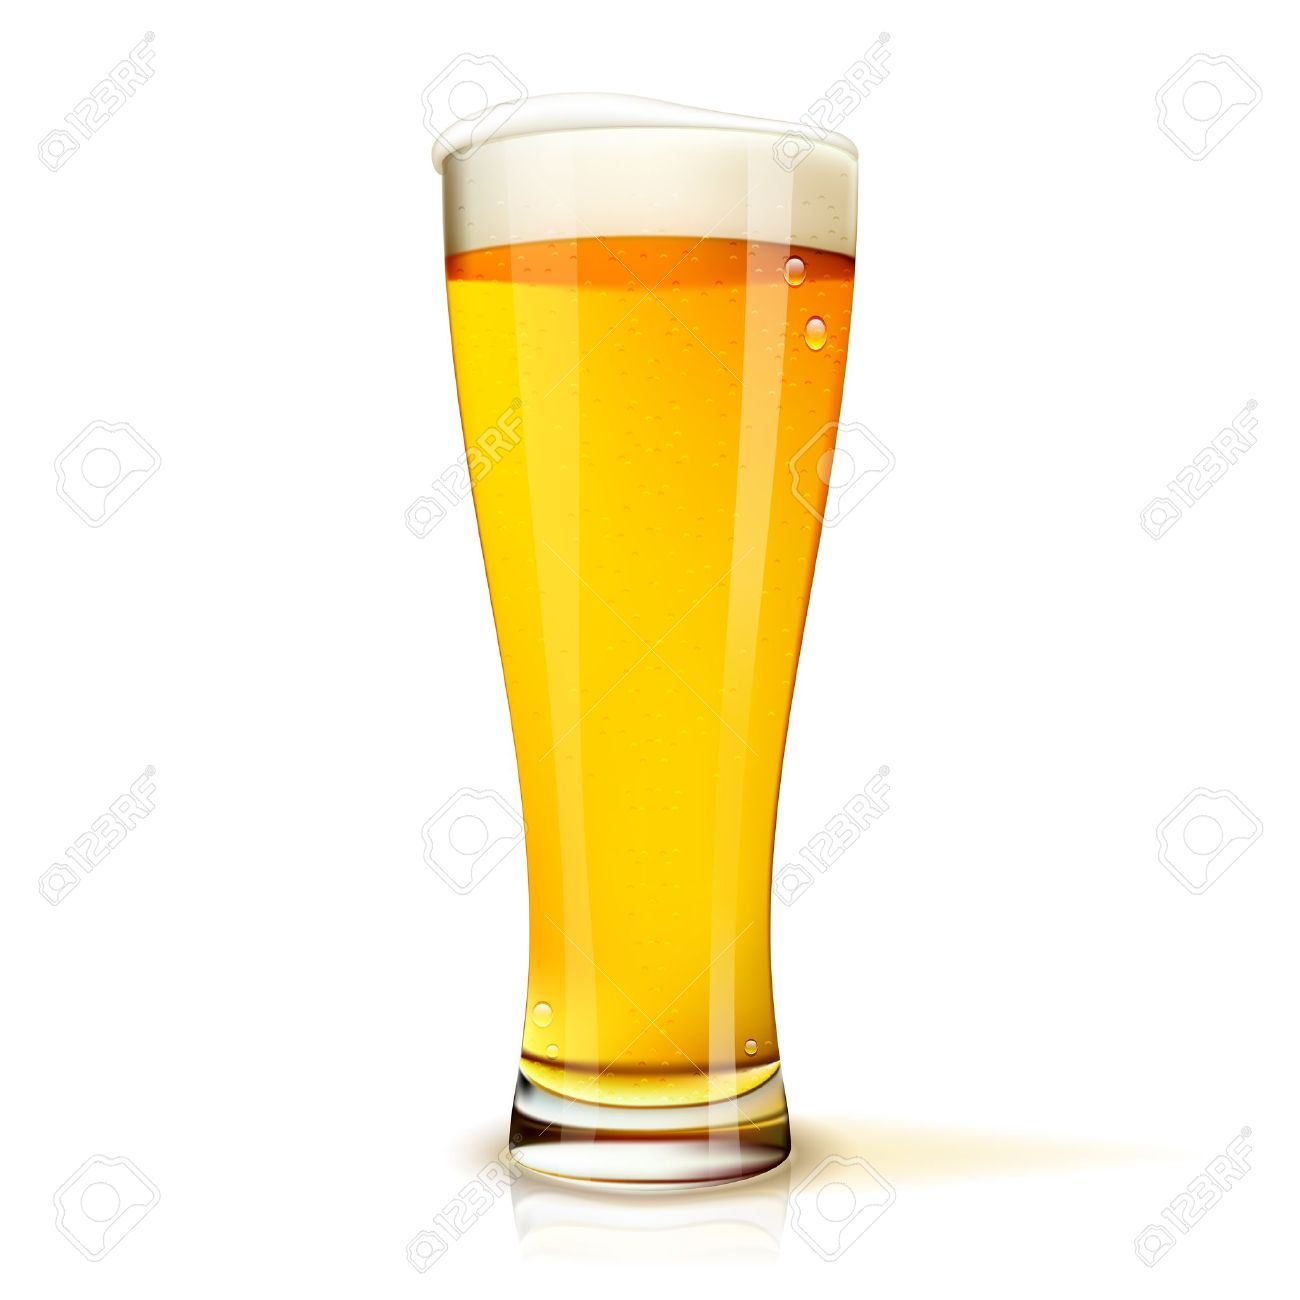 Beer glass clipart 8 » Clipart Station.